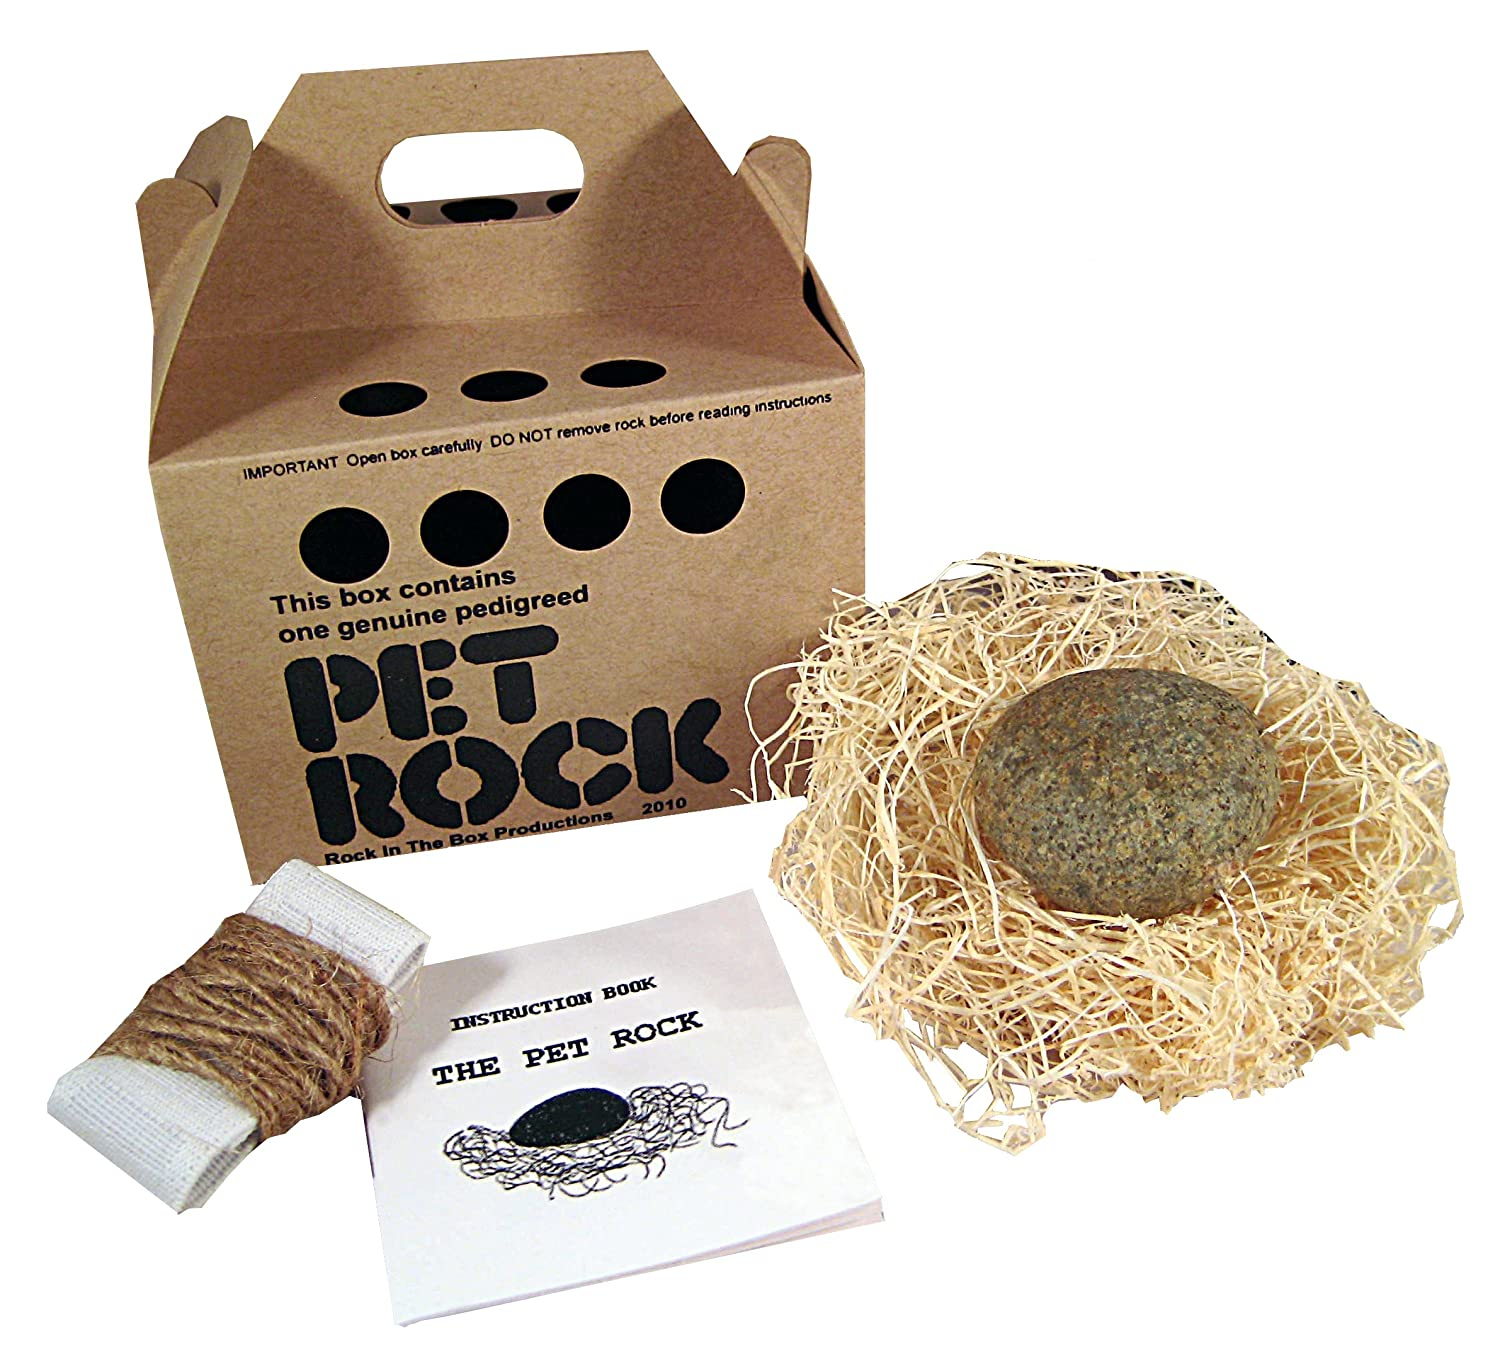 Pet Rock with a Walking Leash